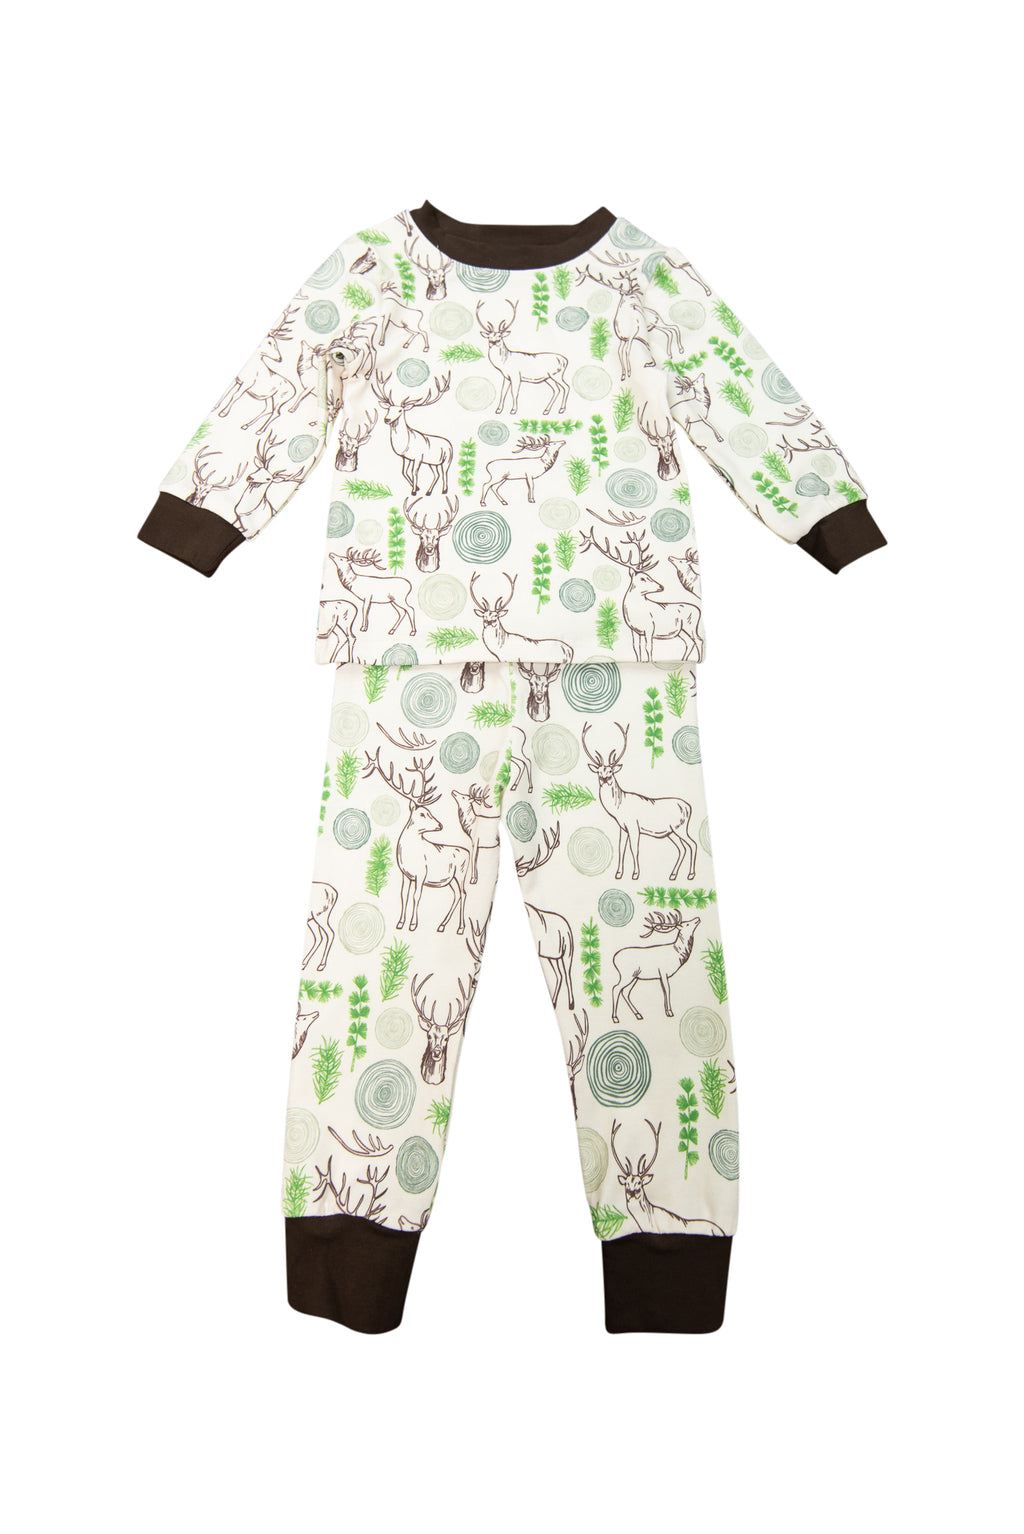 Boys Deer PJ Pant Set